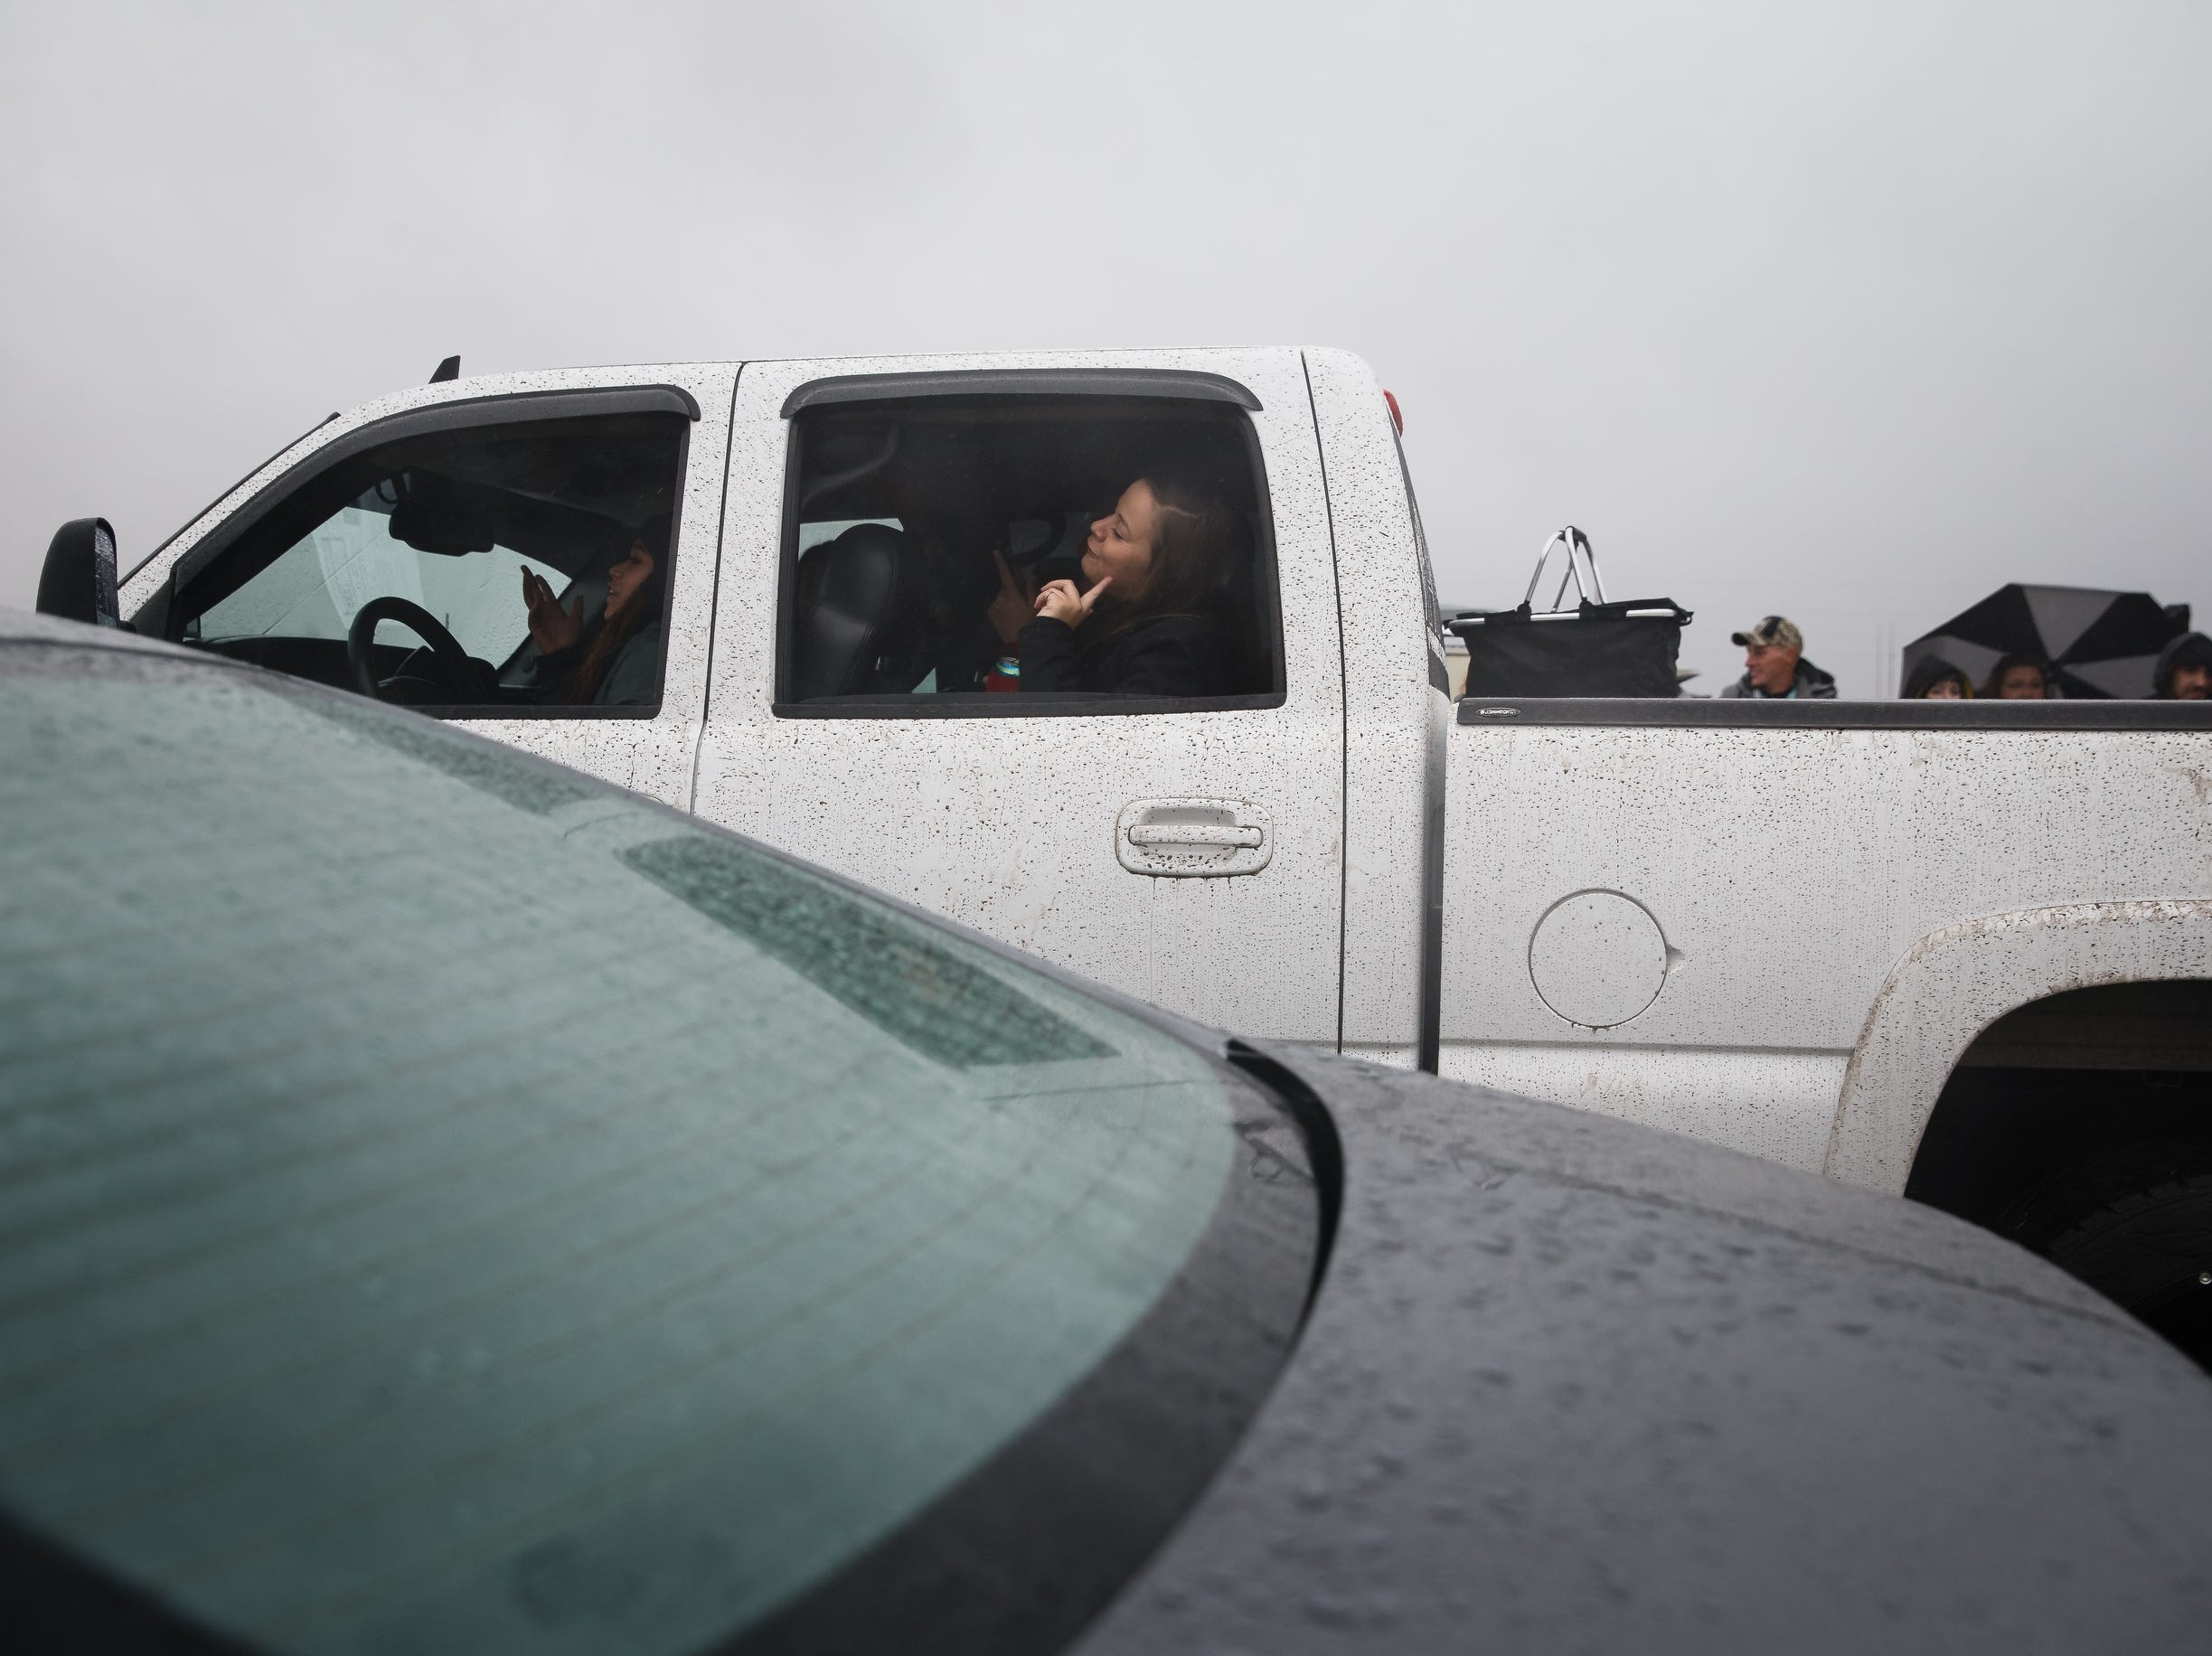 Megan Nemec, 19 of Fairfax, IA, sings while avoiding the rain in a friends truck before the start of Luke Bryan's Farm Tour on Saturday, Sept. 29, 2018 in Boone.